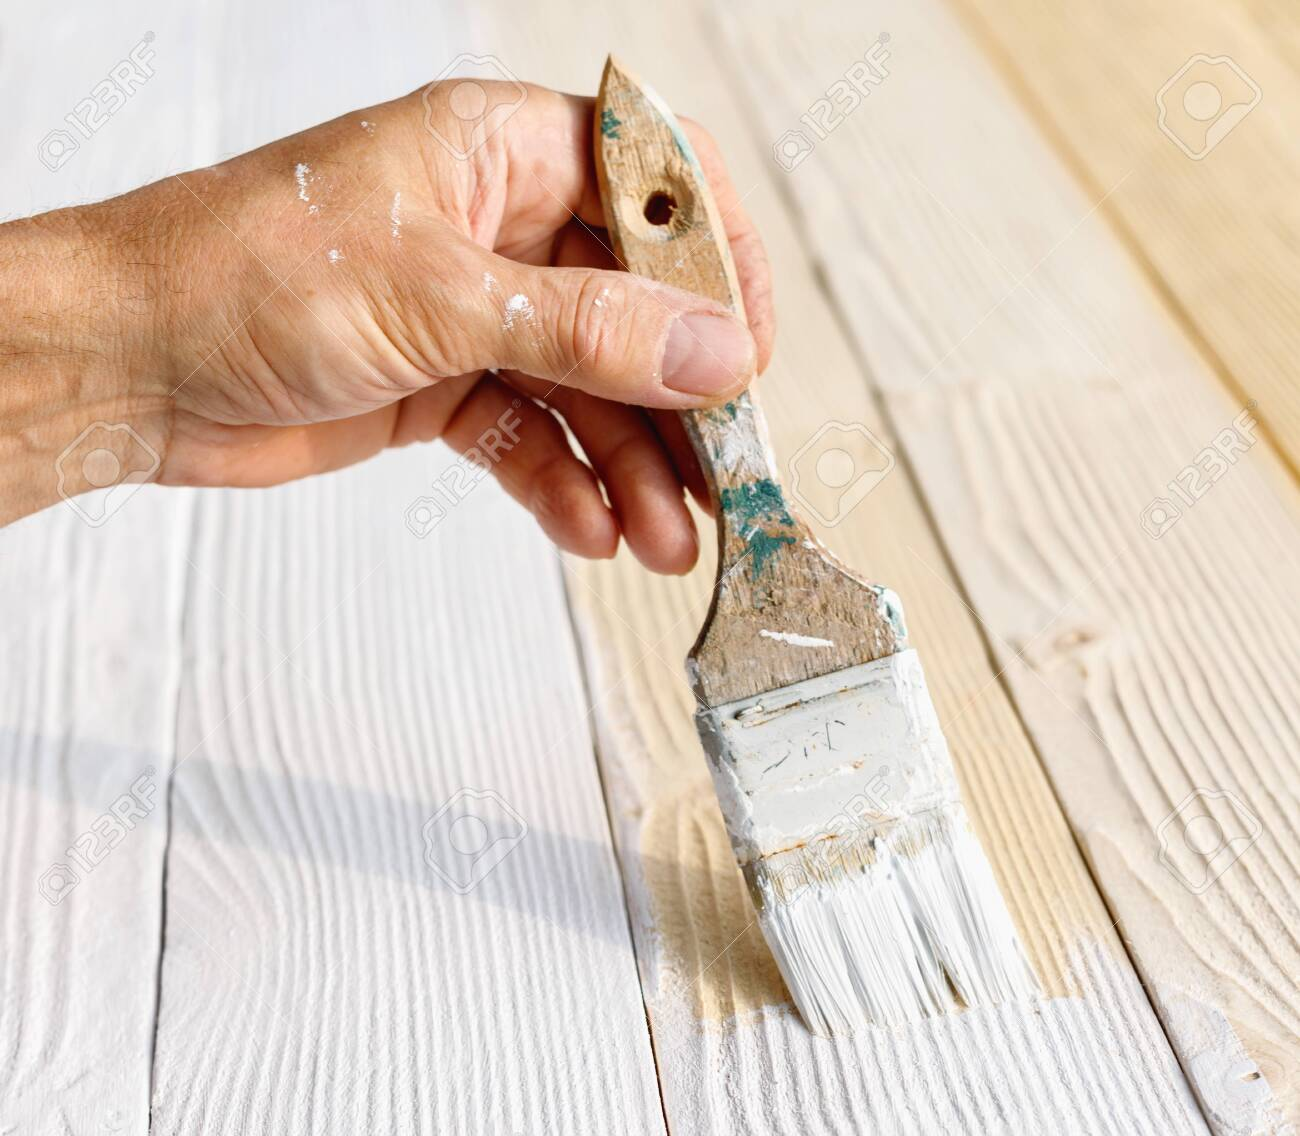 Worker Painting White Wooden Furniture Outdoor Hand With Brush Stock Photo Picture And Royalty Free Image Image 124900861